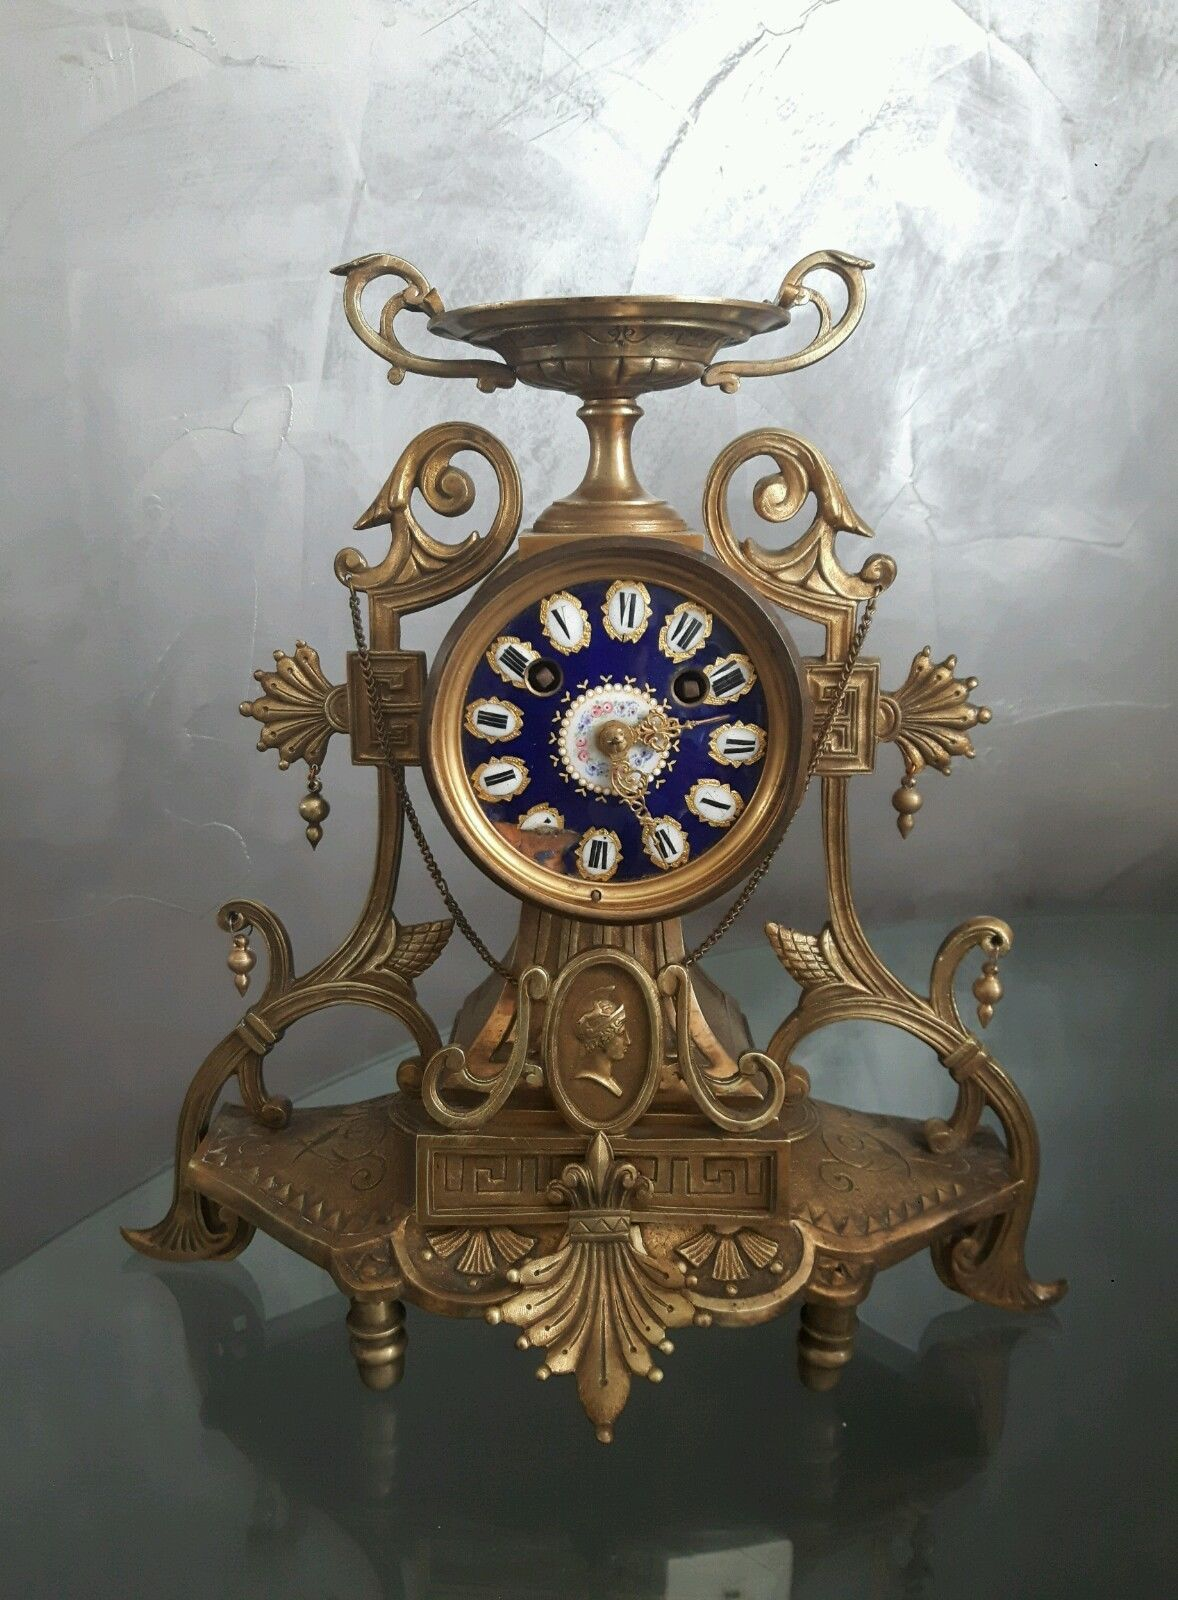 pendule horloge ancienne en bronze et maux de bressans ebay horloges anciennes pinterest. Black Bedroom Furniture Sets. Home Design Ideas